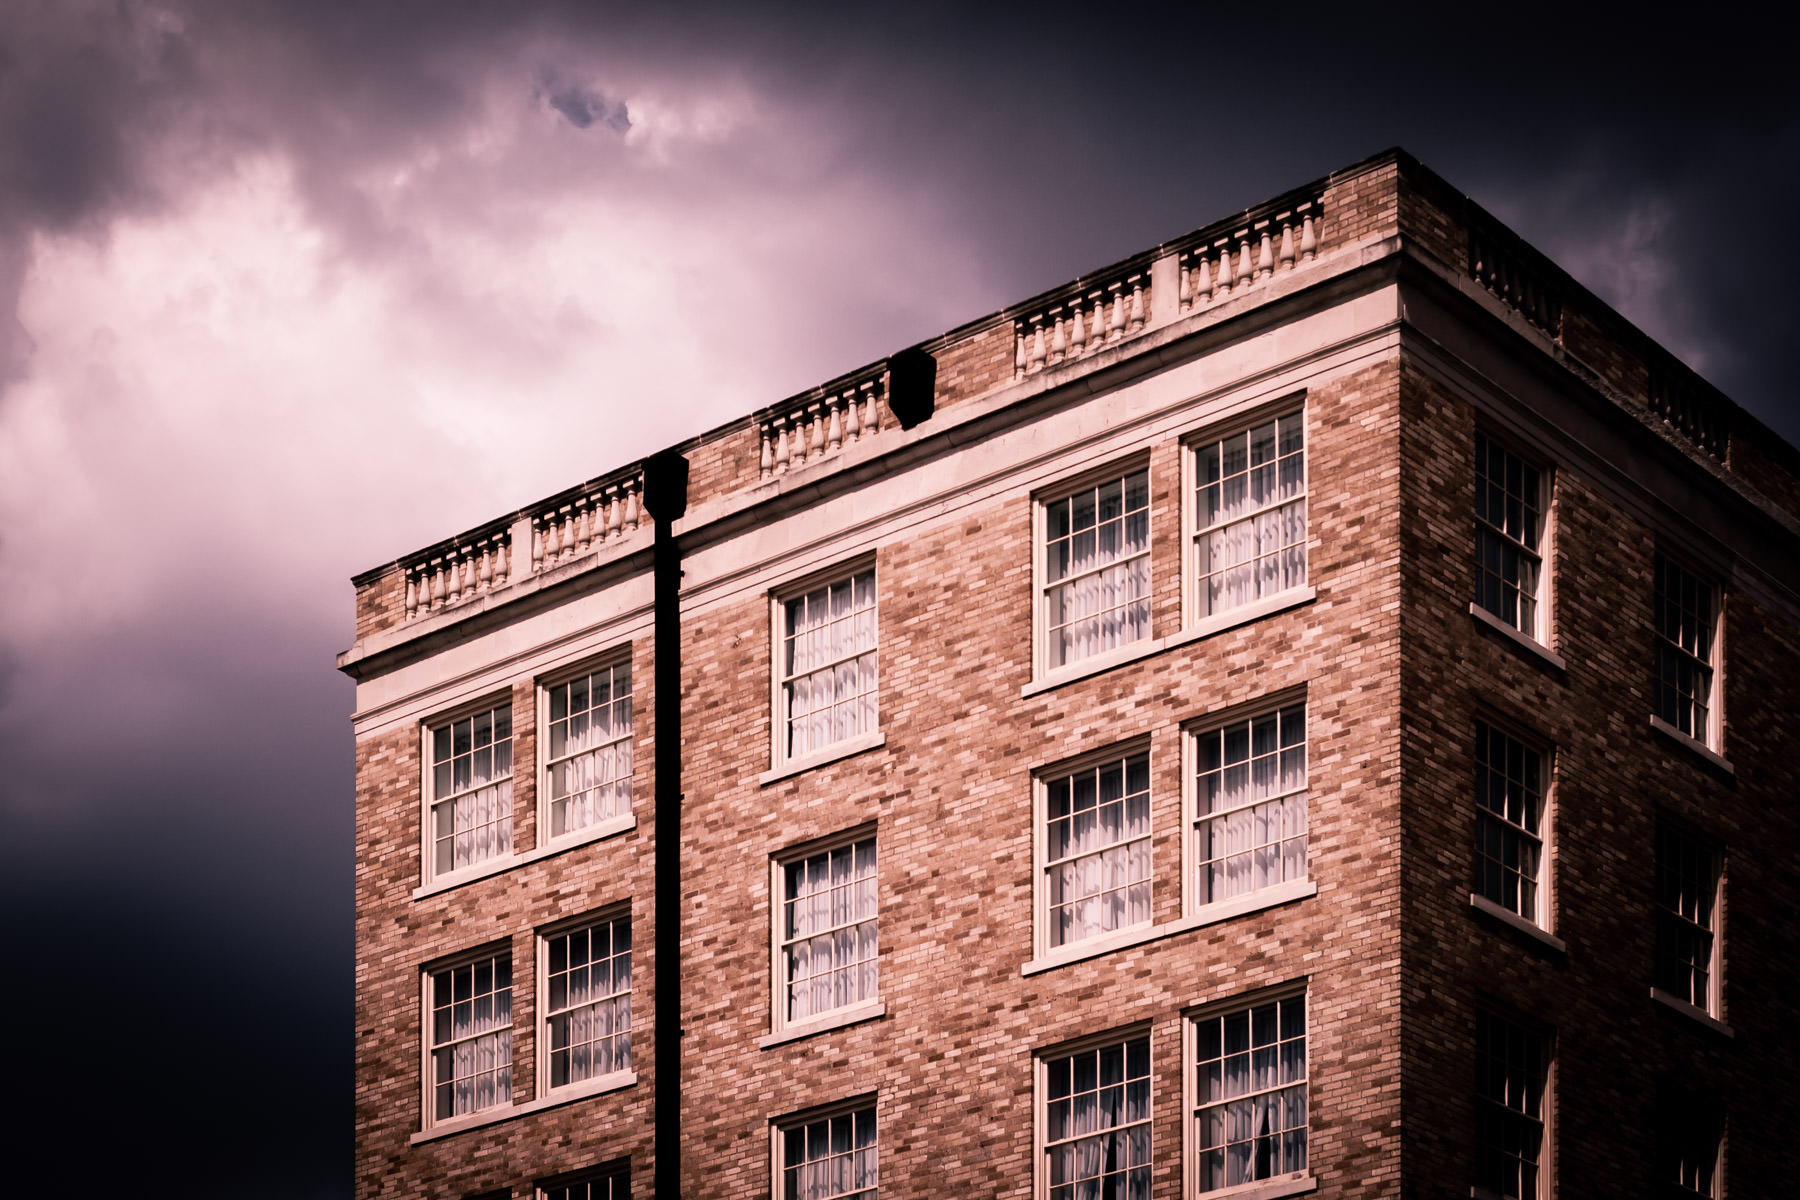 Storm clouds brew over an old building in Downtown Bryan, Texas.